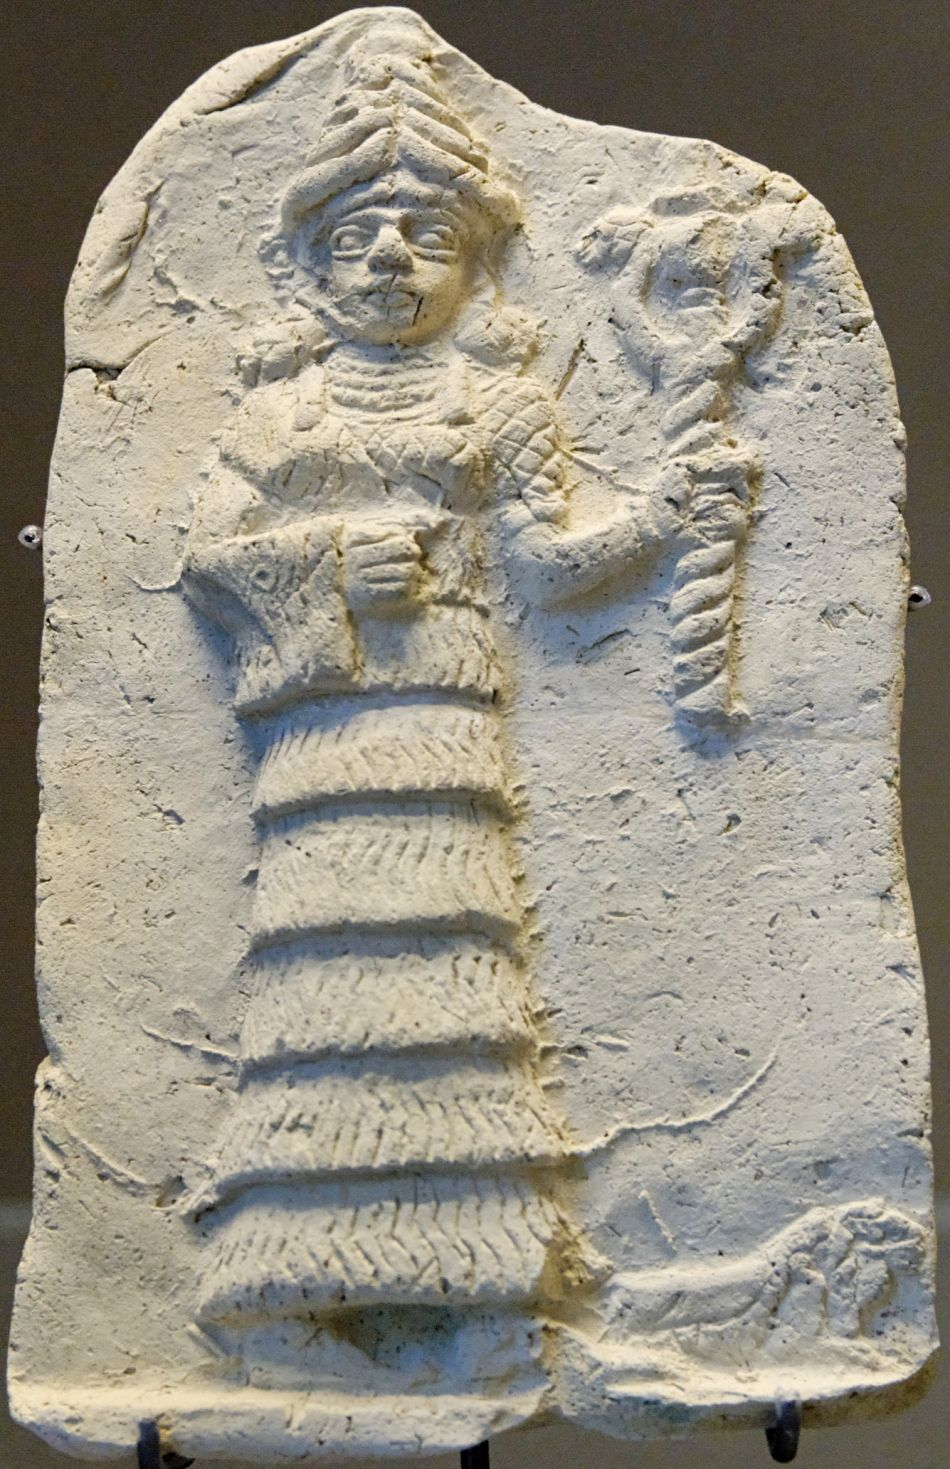 """ISHTAR'S """"MAGIC WAND Notice how this all configures to be the same deity. In """"The Lesser Key of Solomon"""", she is referred to as a very powerful jinni. Depicted as a nude woman with feathered wings, wearing a crown, holding a serpent in one hand, and riding a dragon-like beast with wings and a serpent-like tail. Considered to be a jinni in the First Hierarchy and rules over 40 legions of Spirits."""